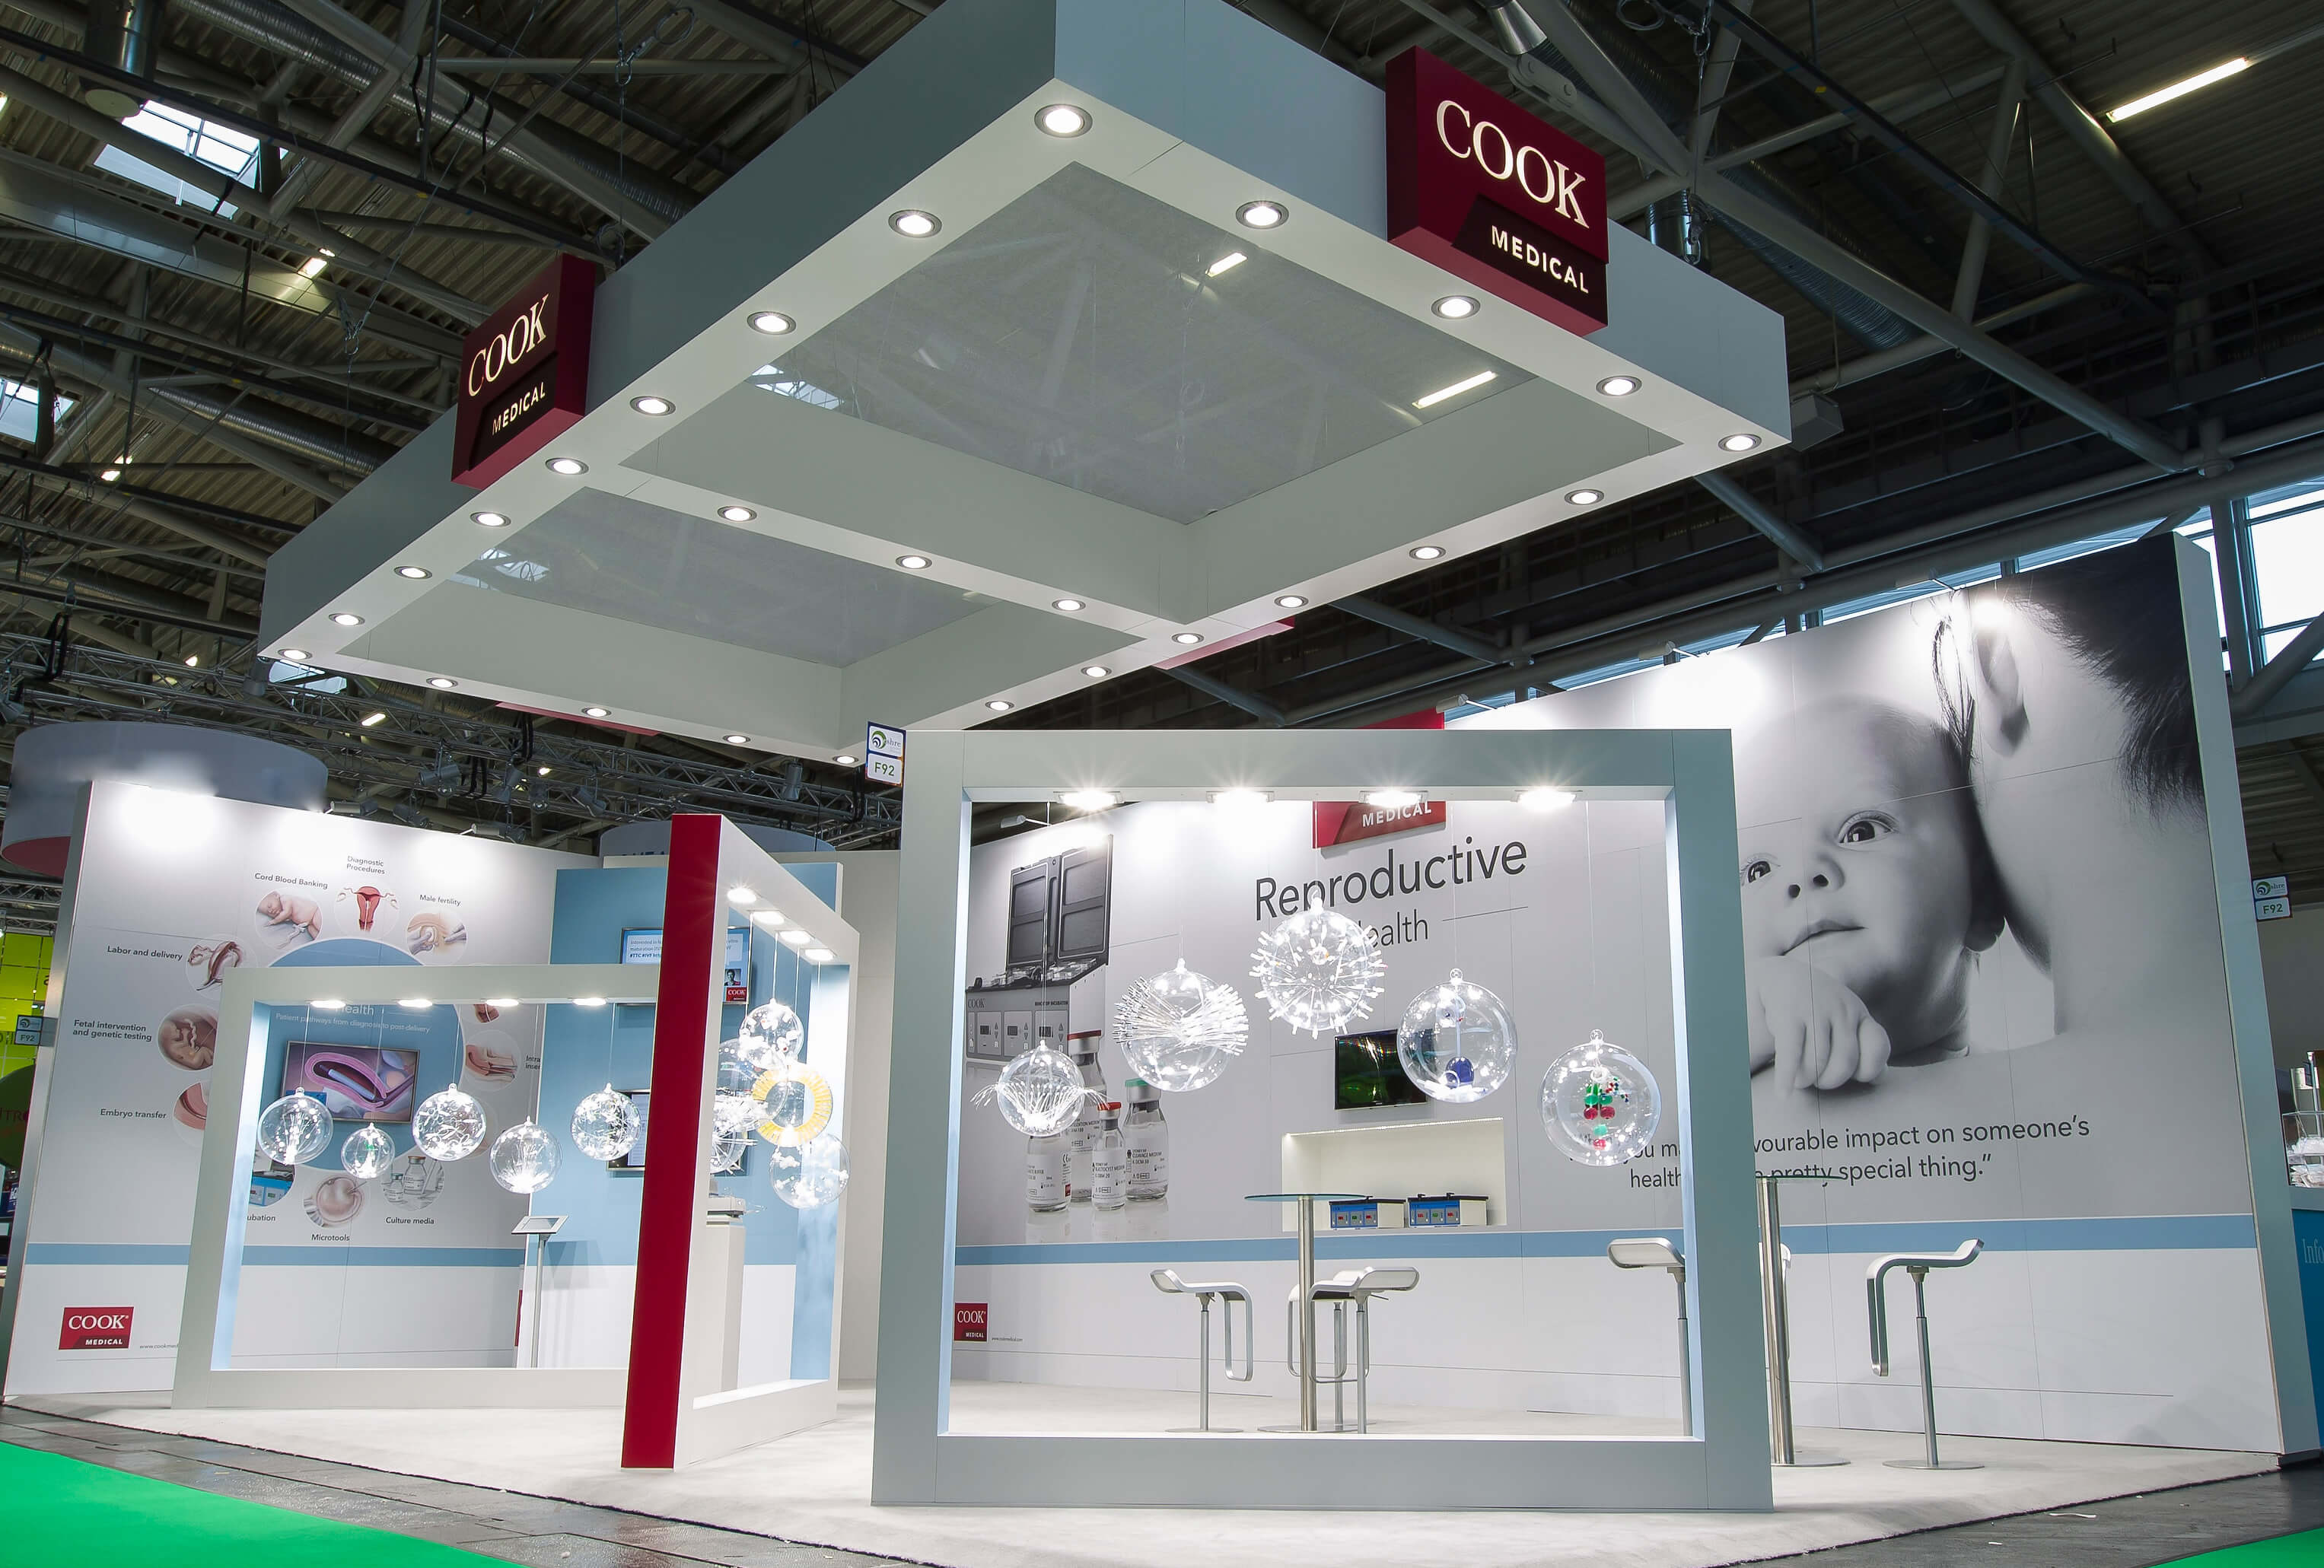 Exhibition Stand Health And Safety : Eshre in london cook medical